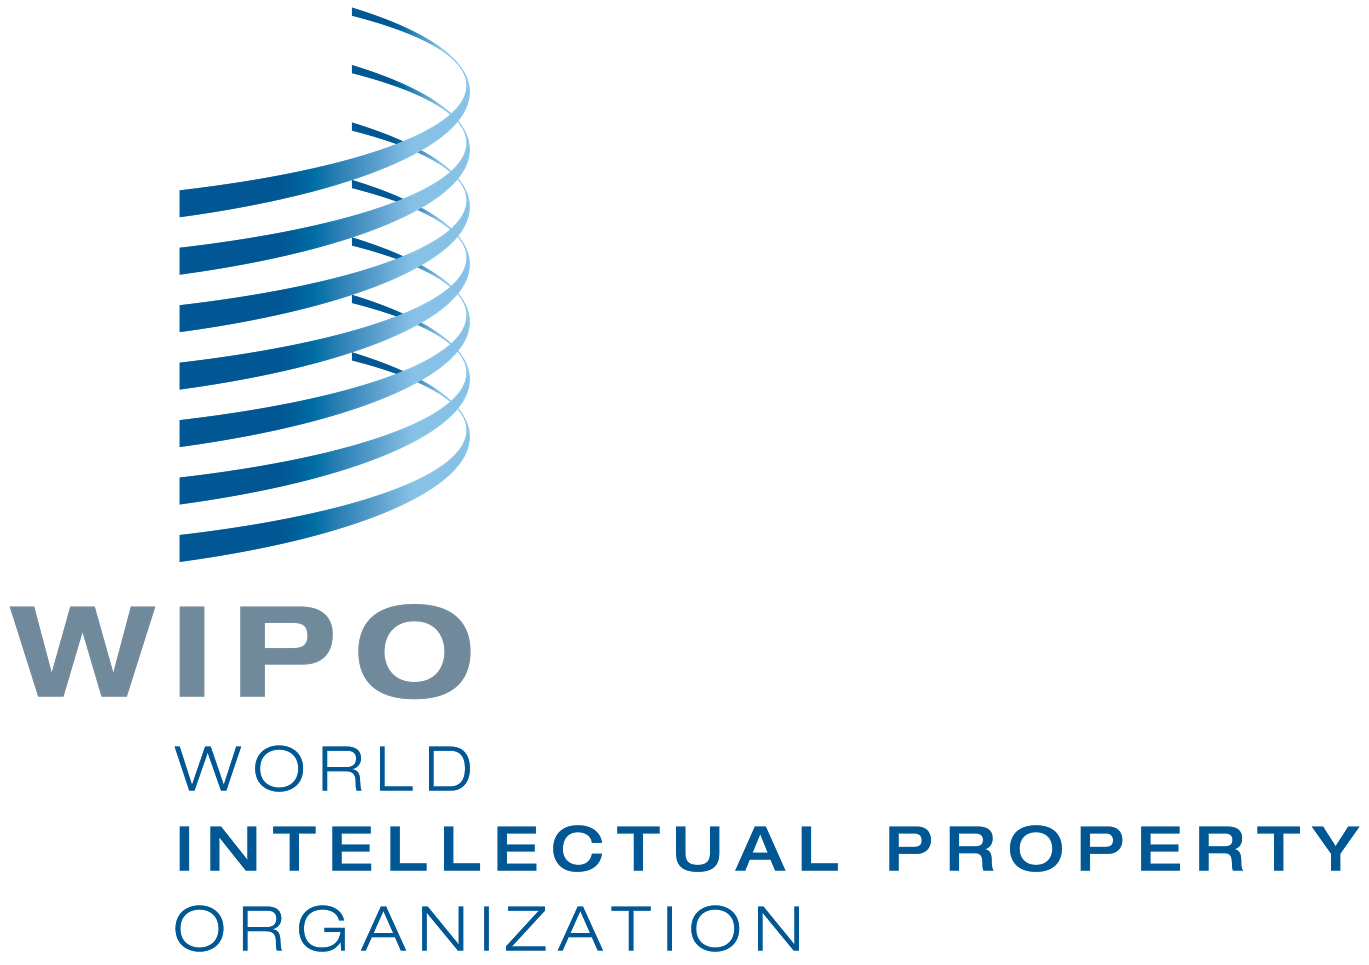 logo for World Intellectual Property Organization